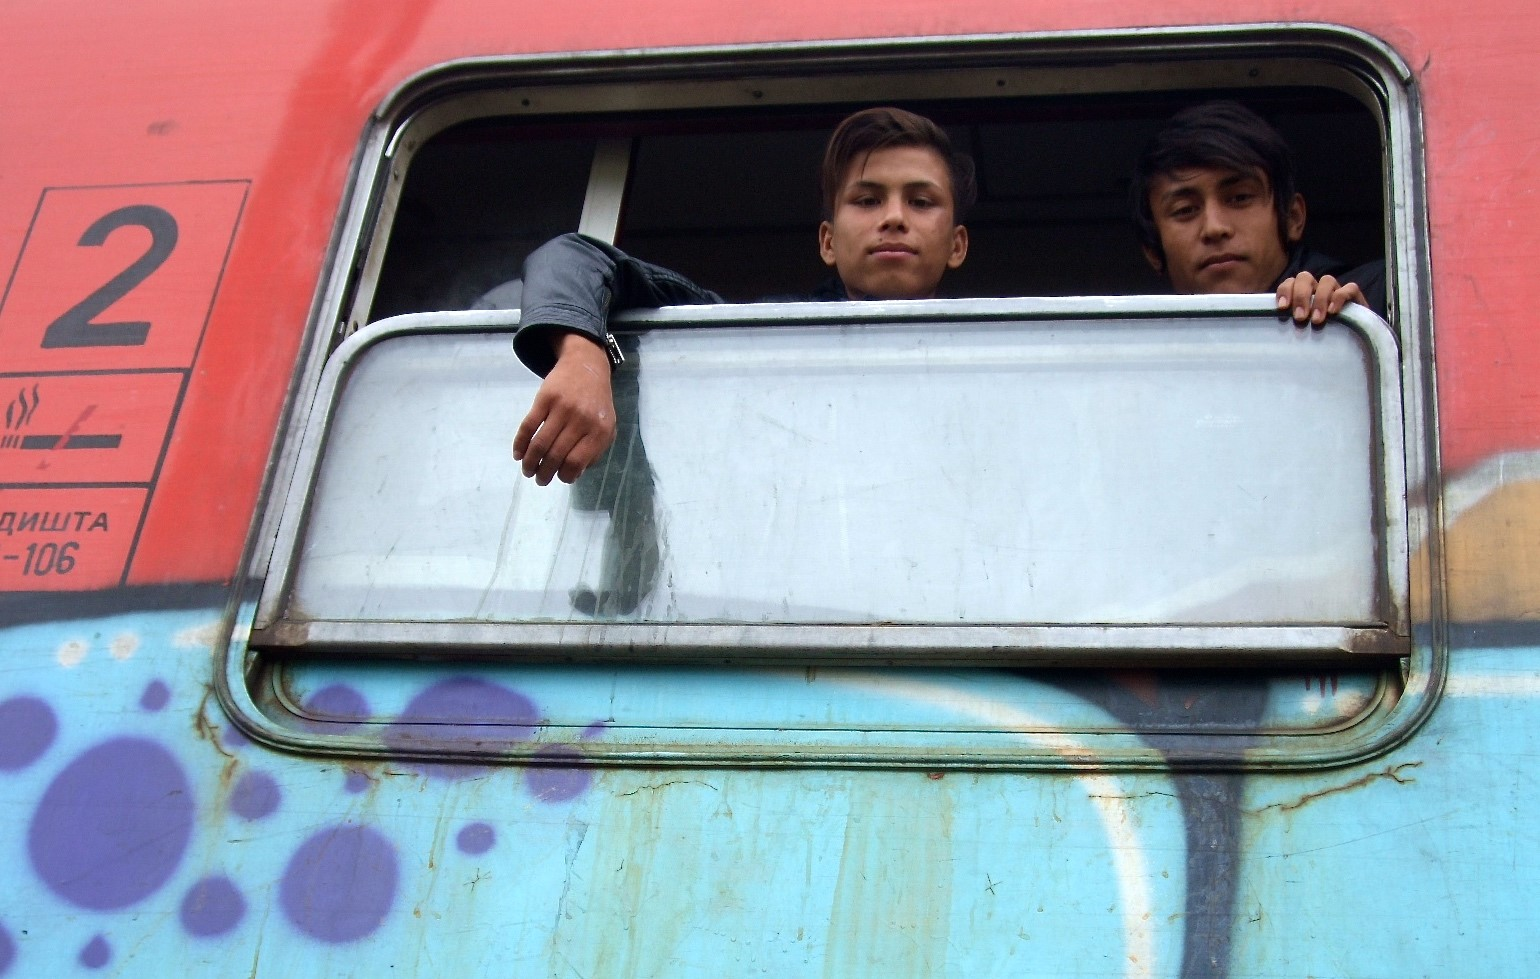 Afghan refugees, Ali and Mohamed, on board the train about to depart for the Serbian border